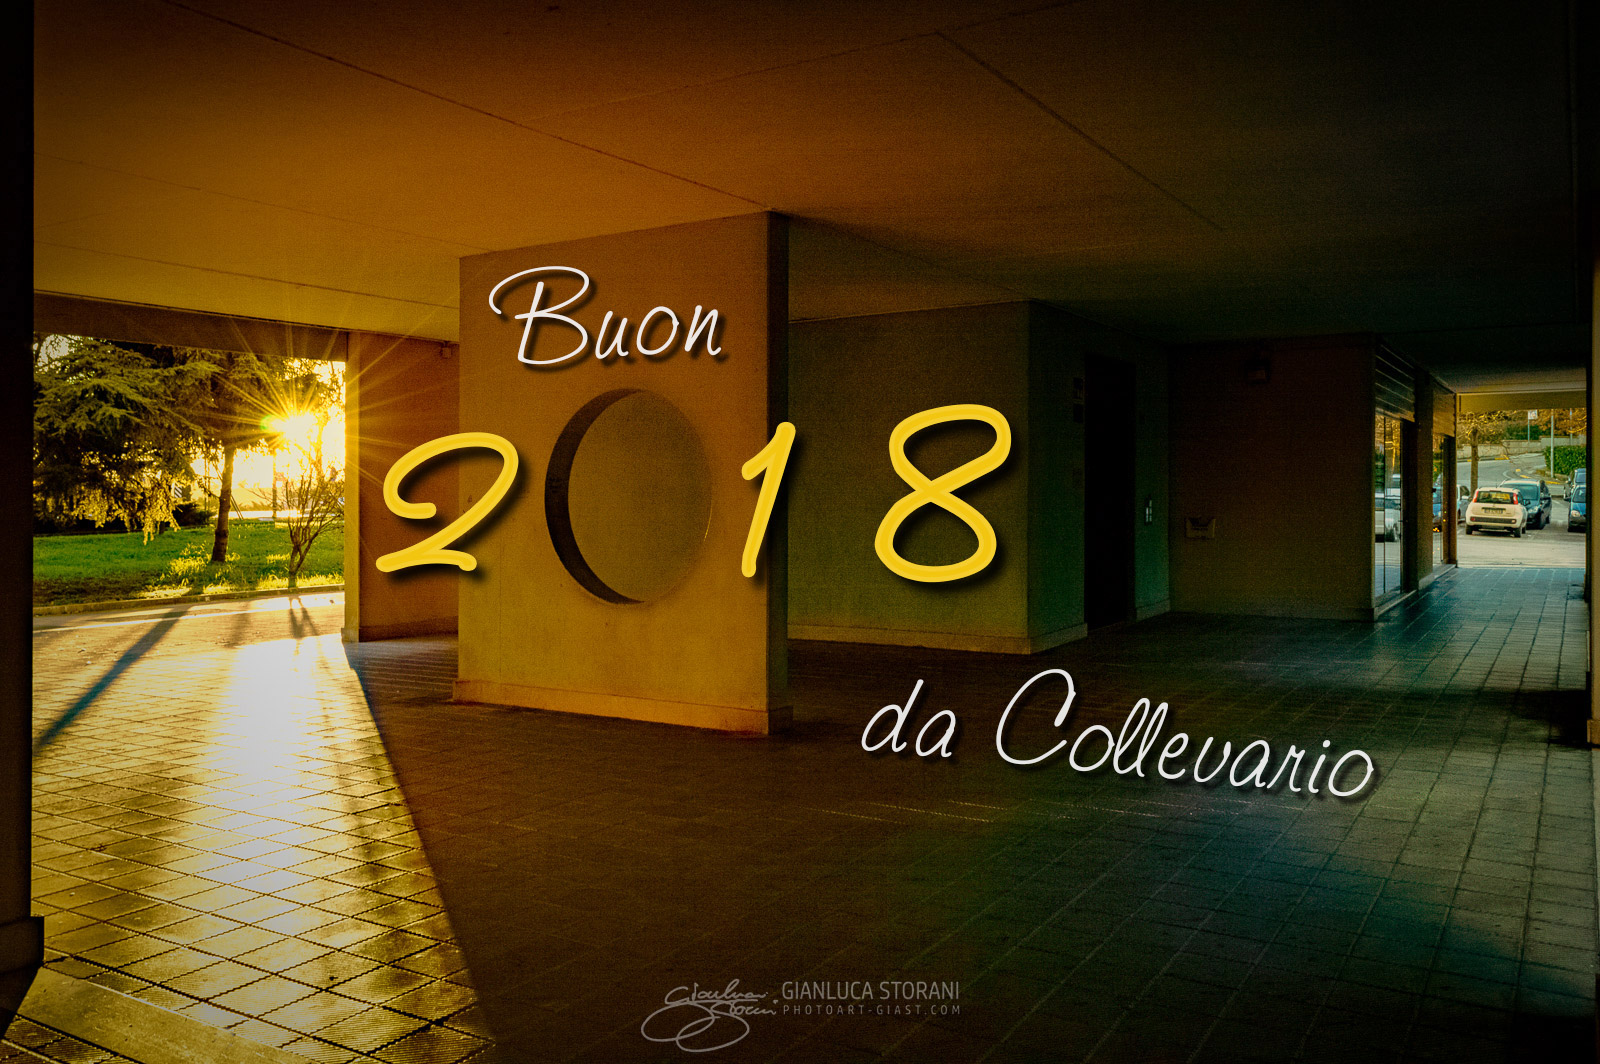 Buon 2018 dal Quartiere Collevario - Gianluca Storani Photo Art (ID: 4-7148)